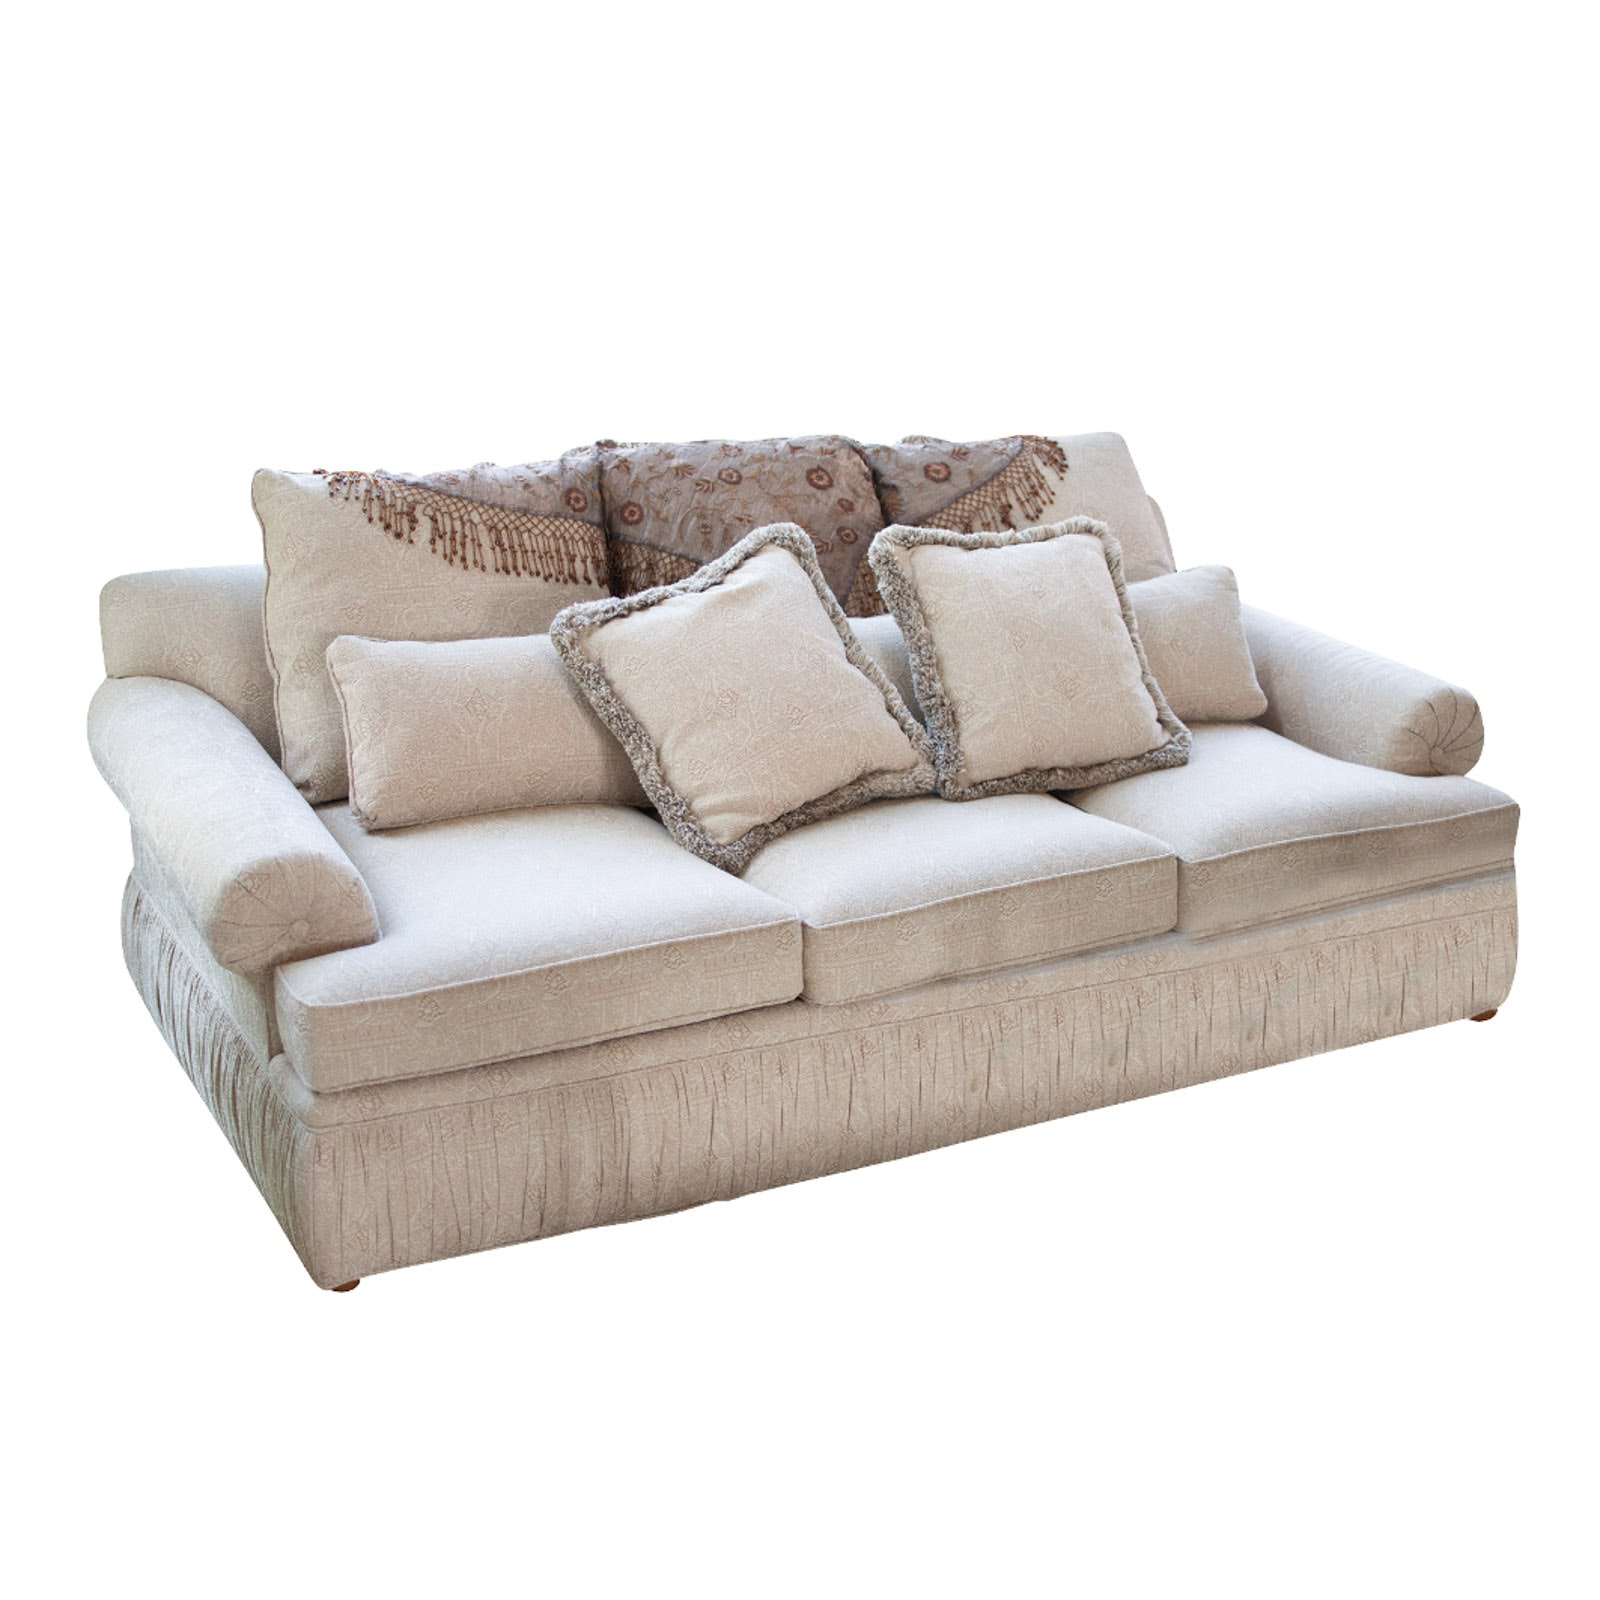 Contemporary Jacquard Upholstered Sofa by Pearson